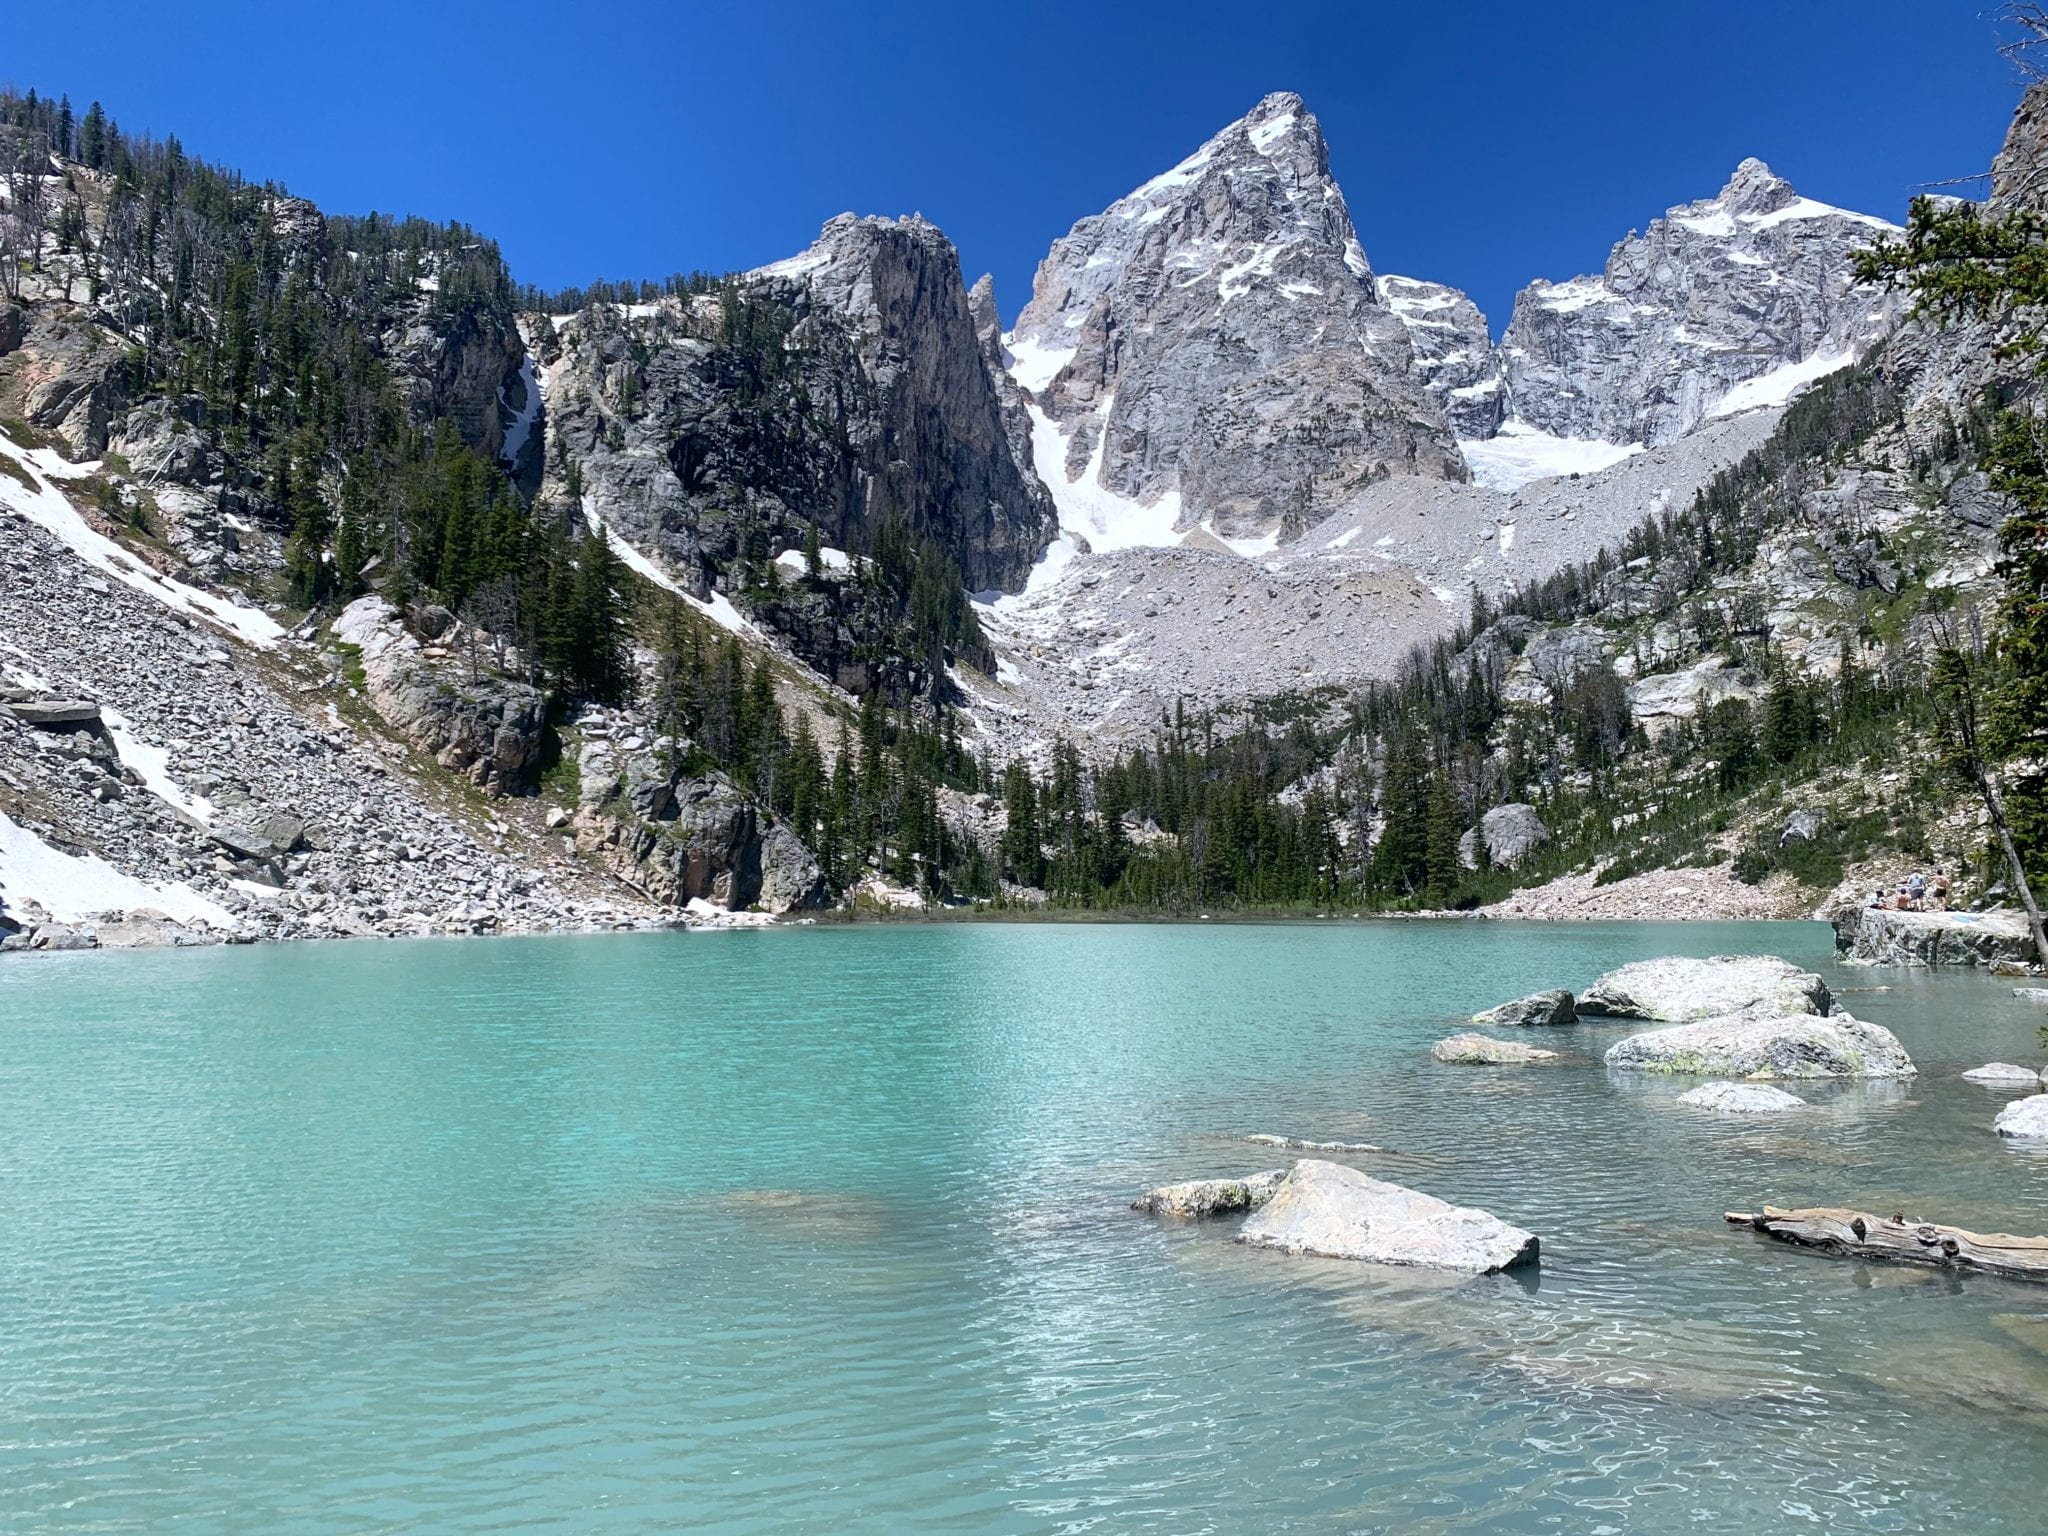 The beautiful Delta Lake in Grand Tetons NP